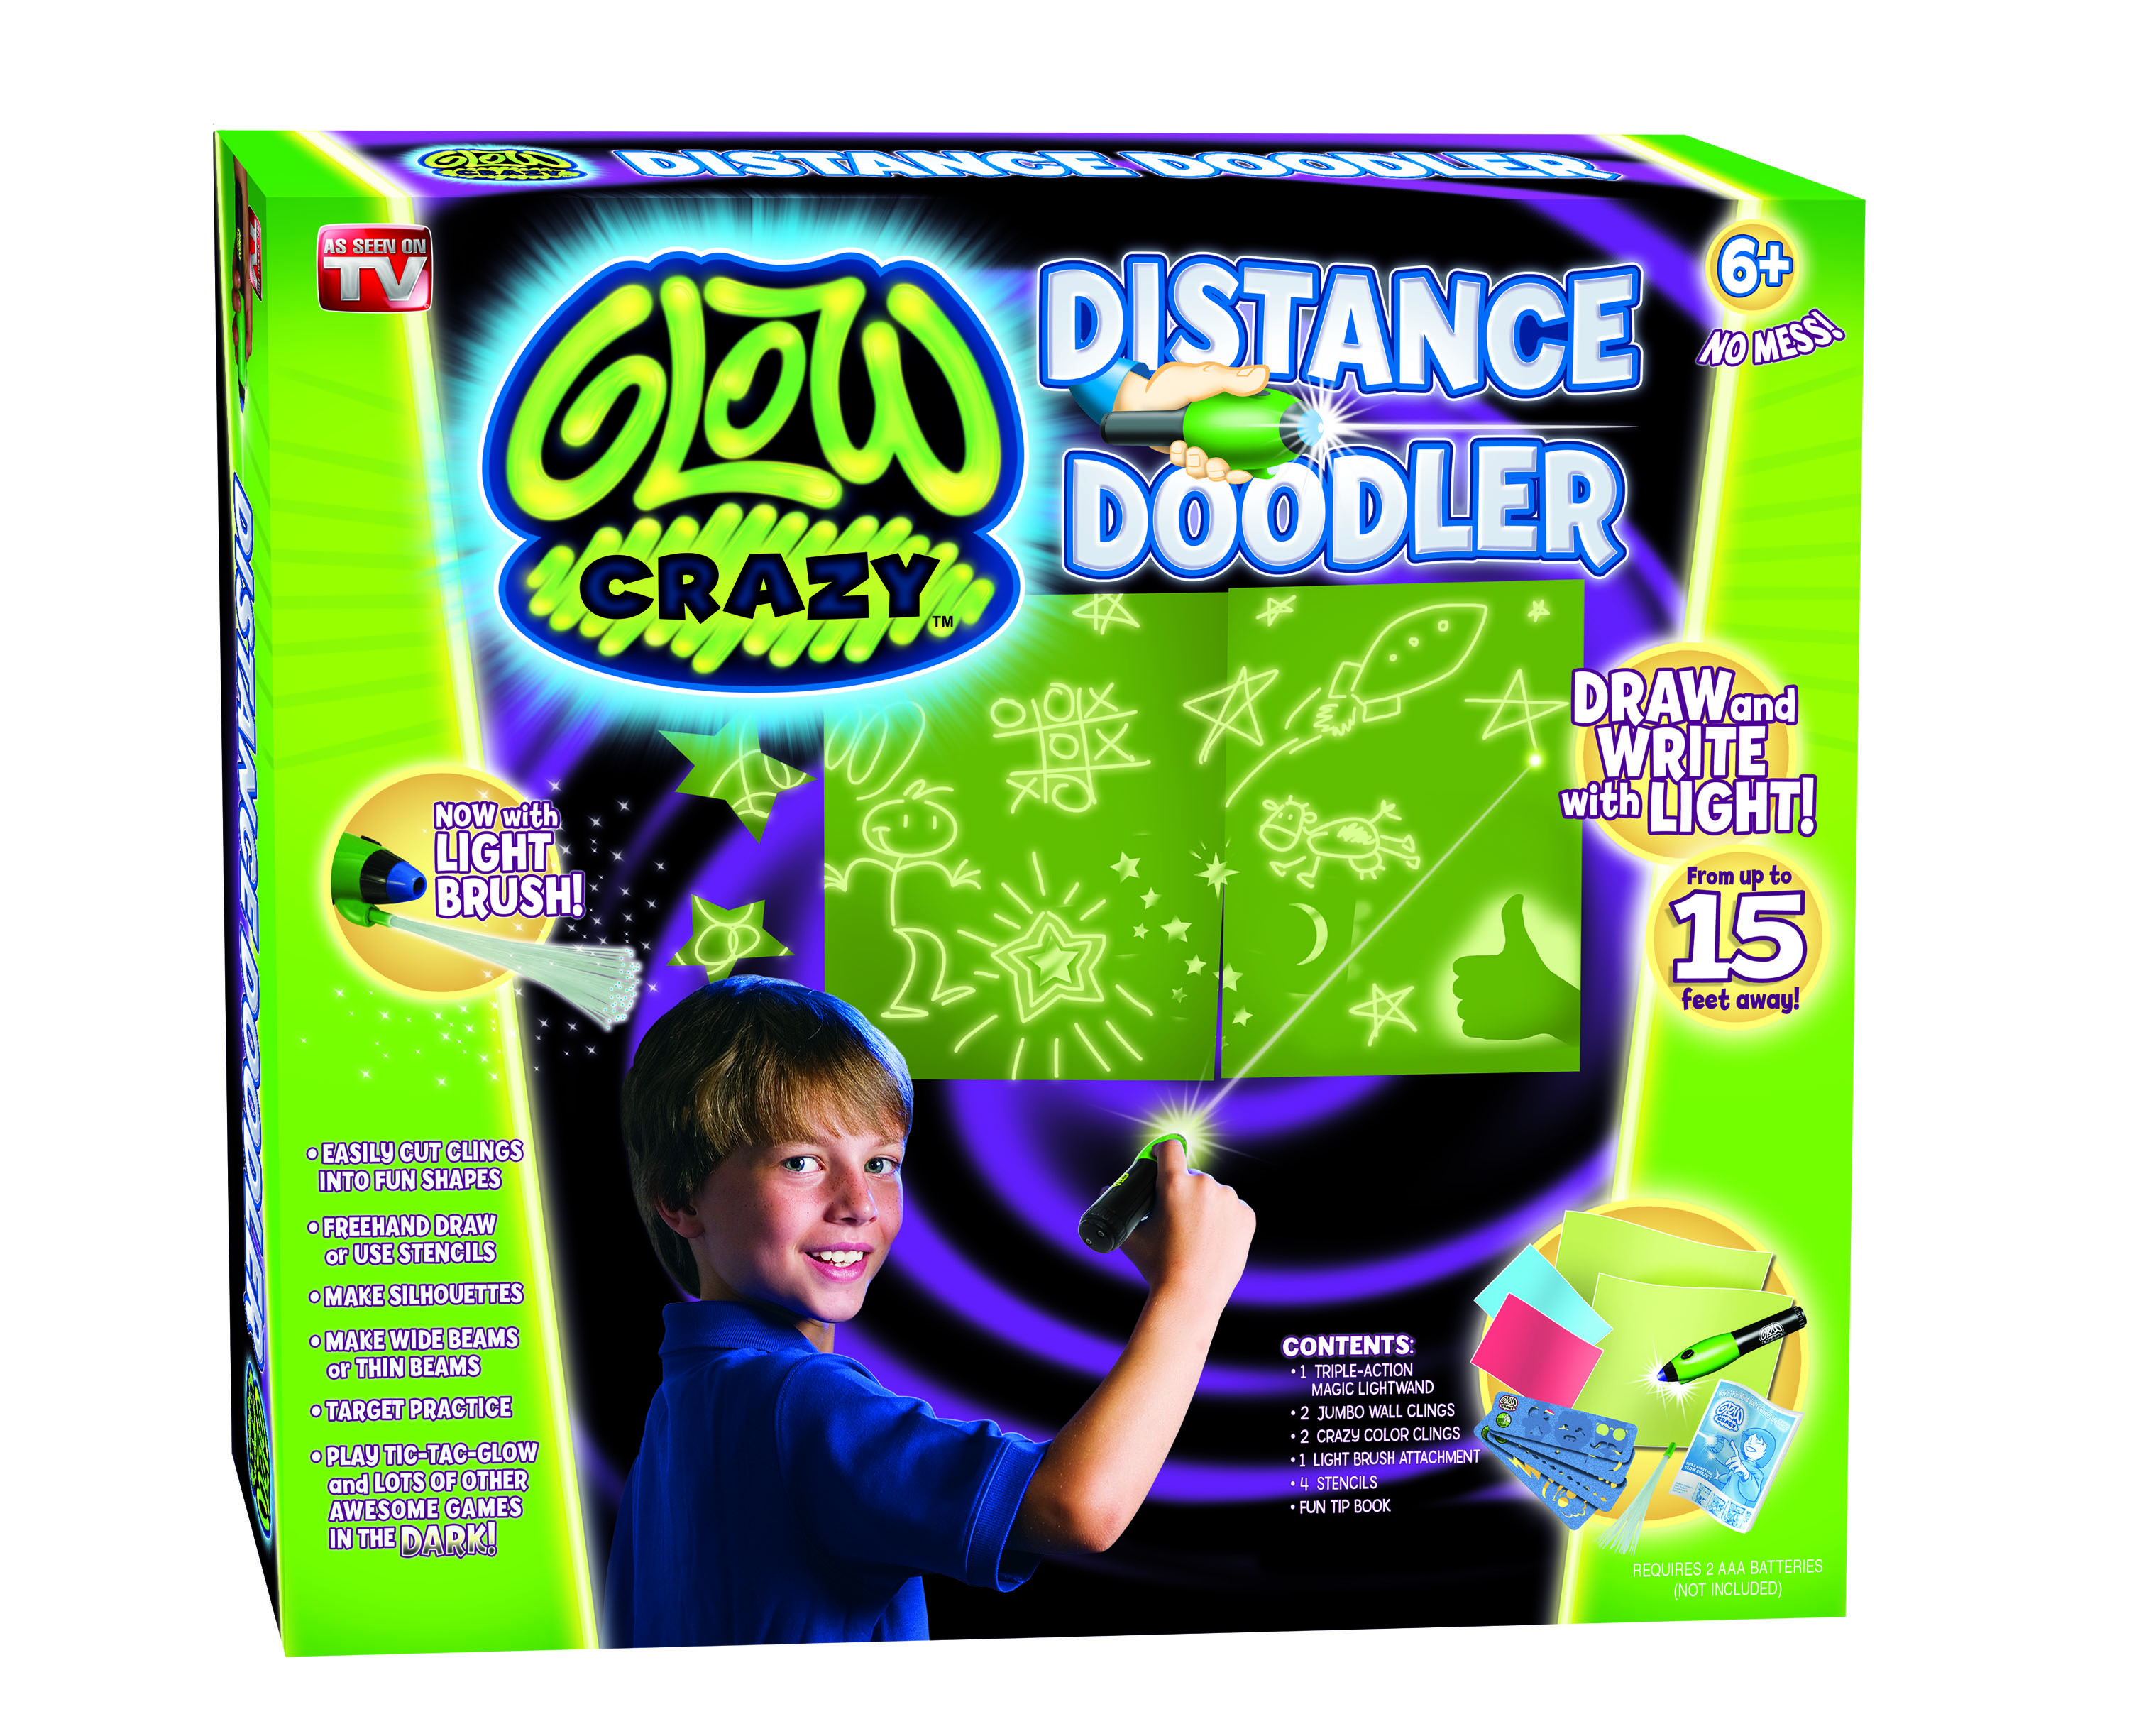 Glow Crazy Distance Doodler_Techno Source